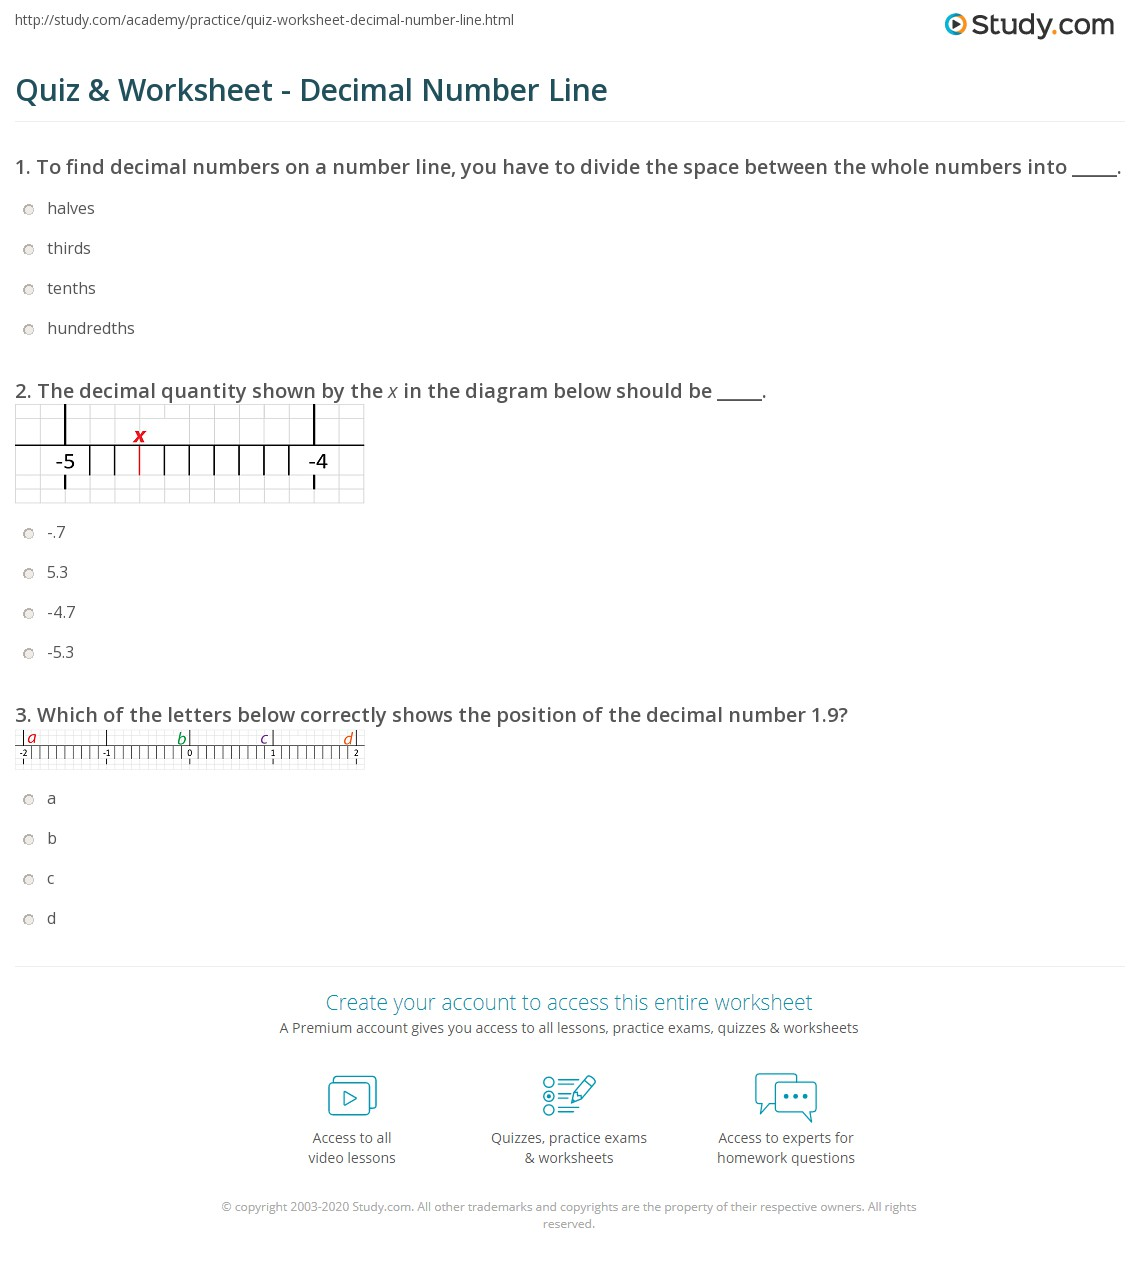 worksheet Decimals On A Number Line Worksheet quiz worksheet decimal number line study com print placing finding decimals on a worksheet